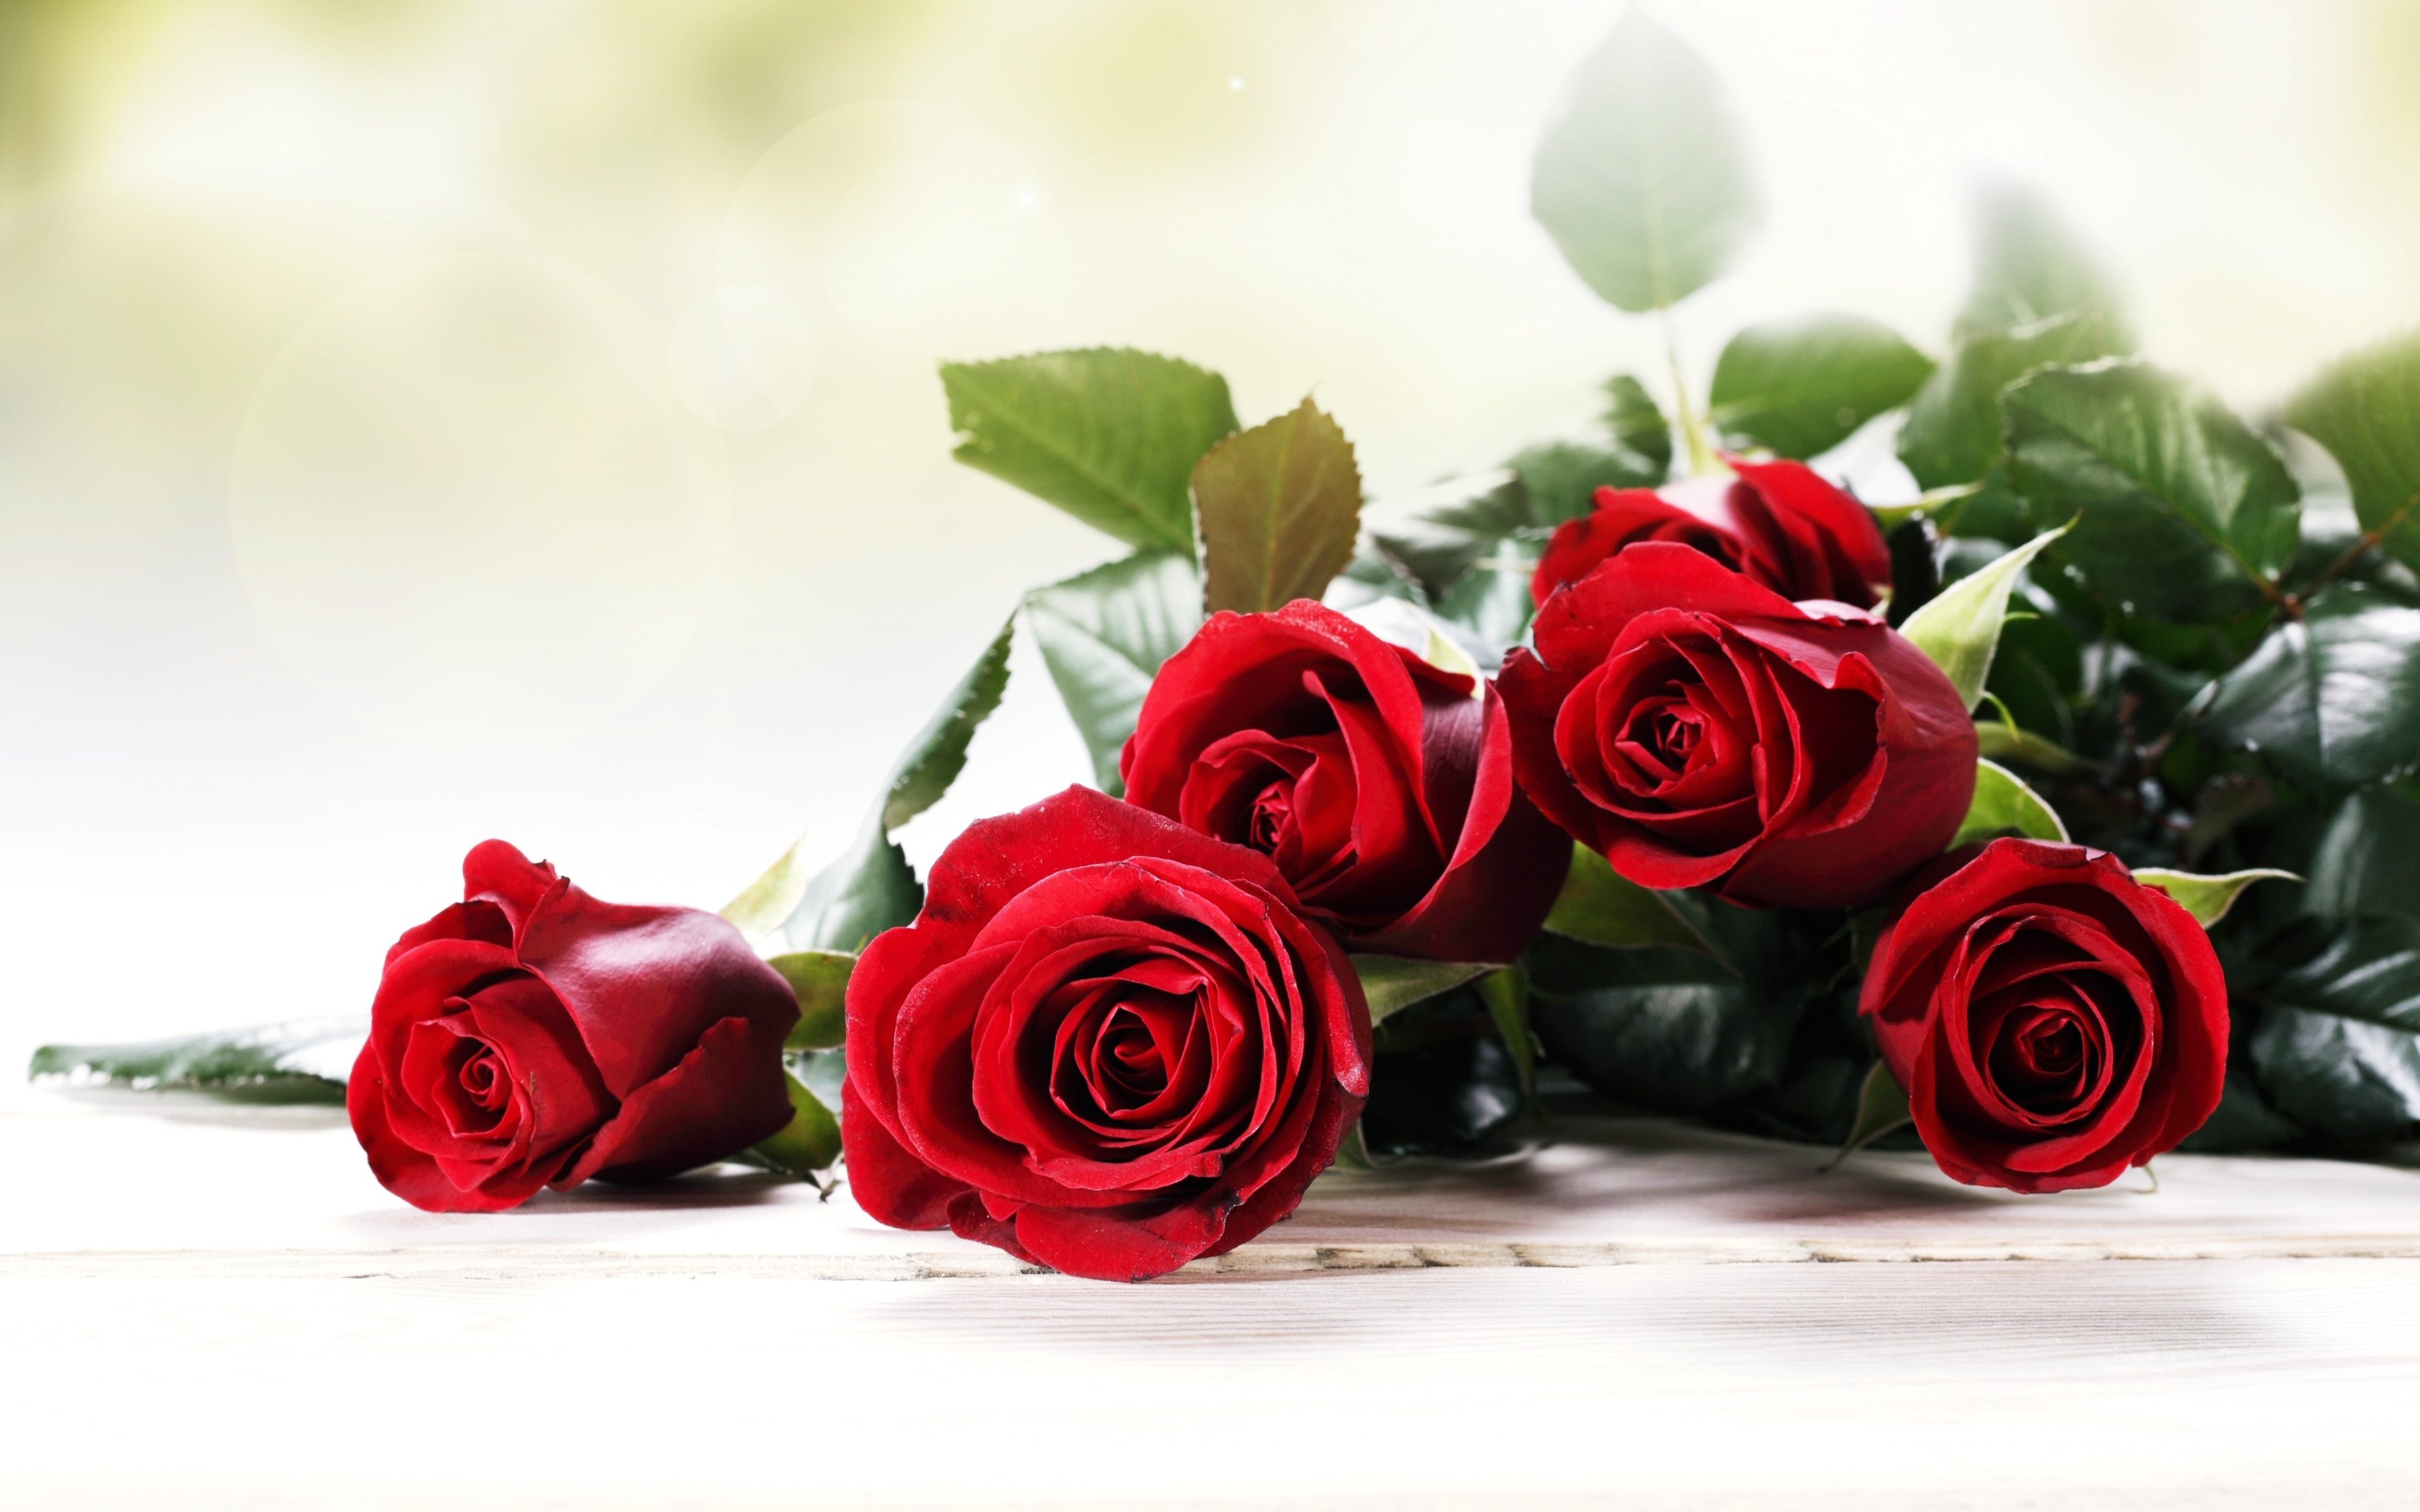 Roses red flowers love romance emotions 4you bouquet - Bouquet of red roses hd images ...